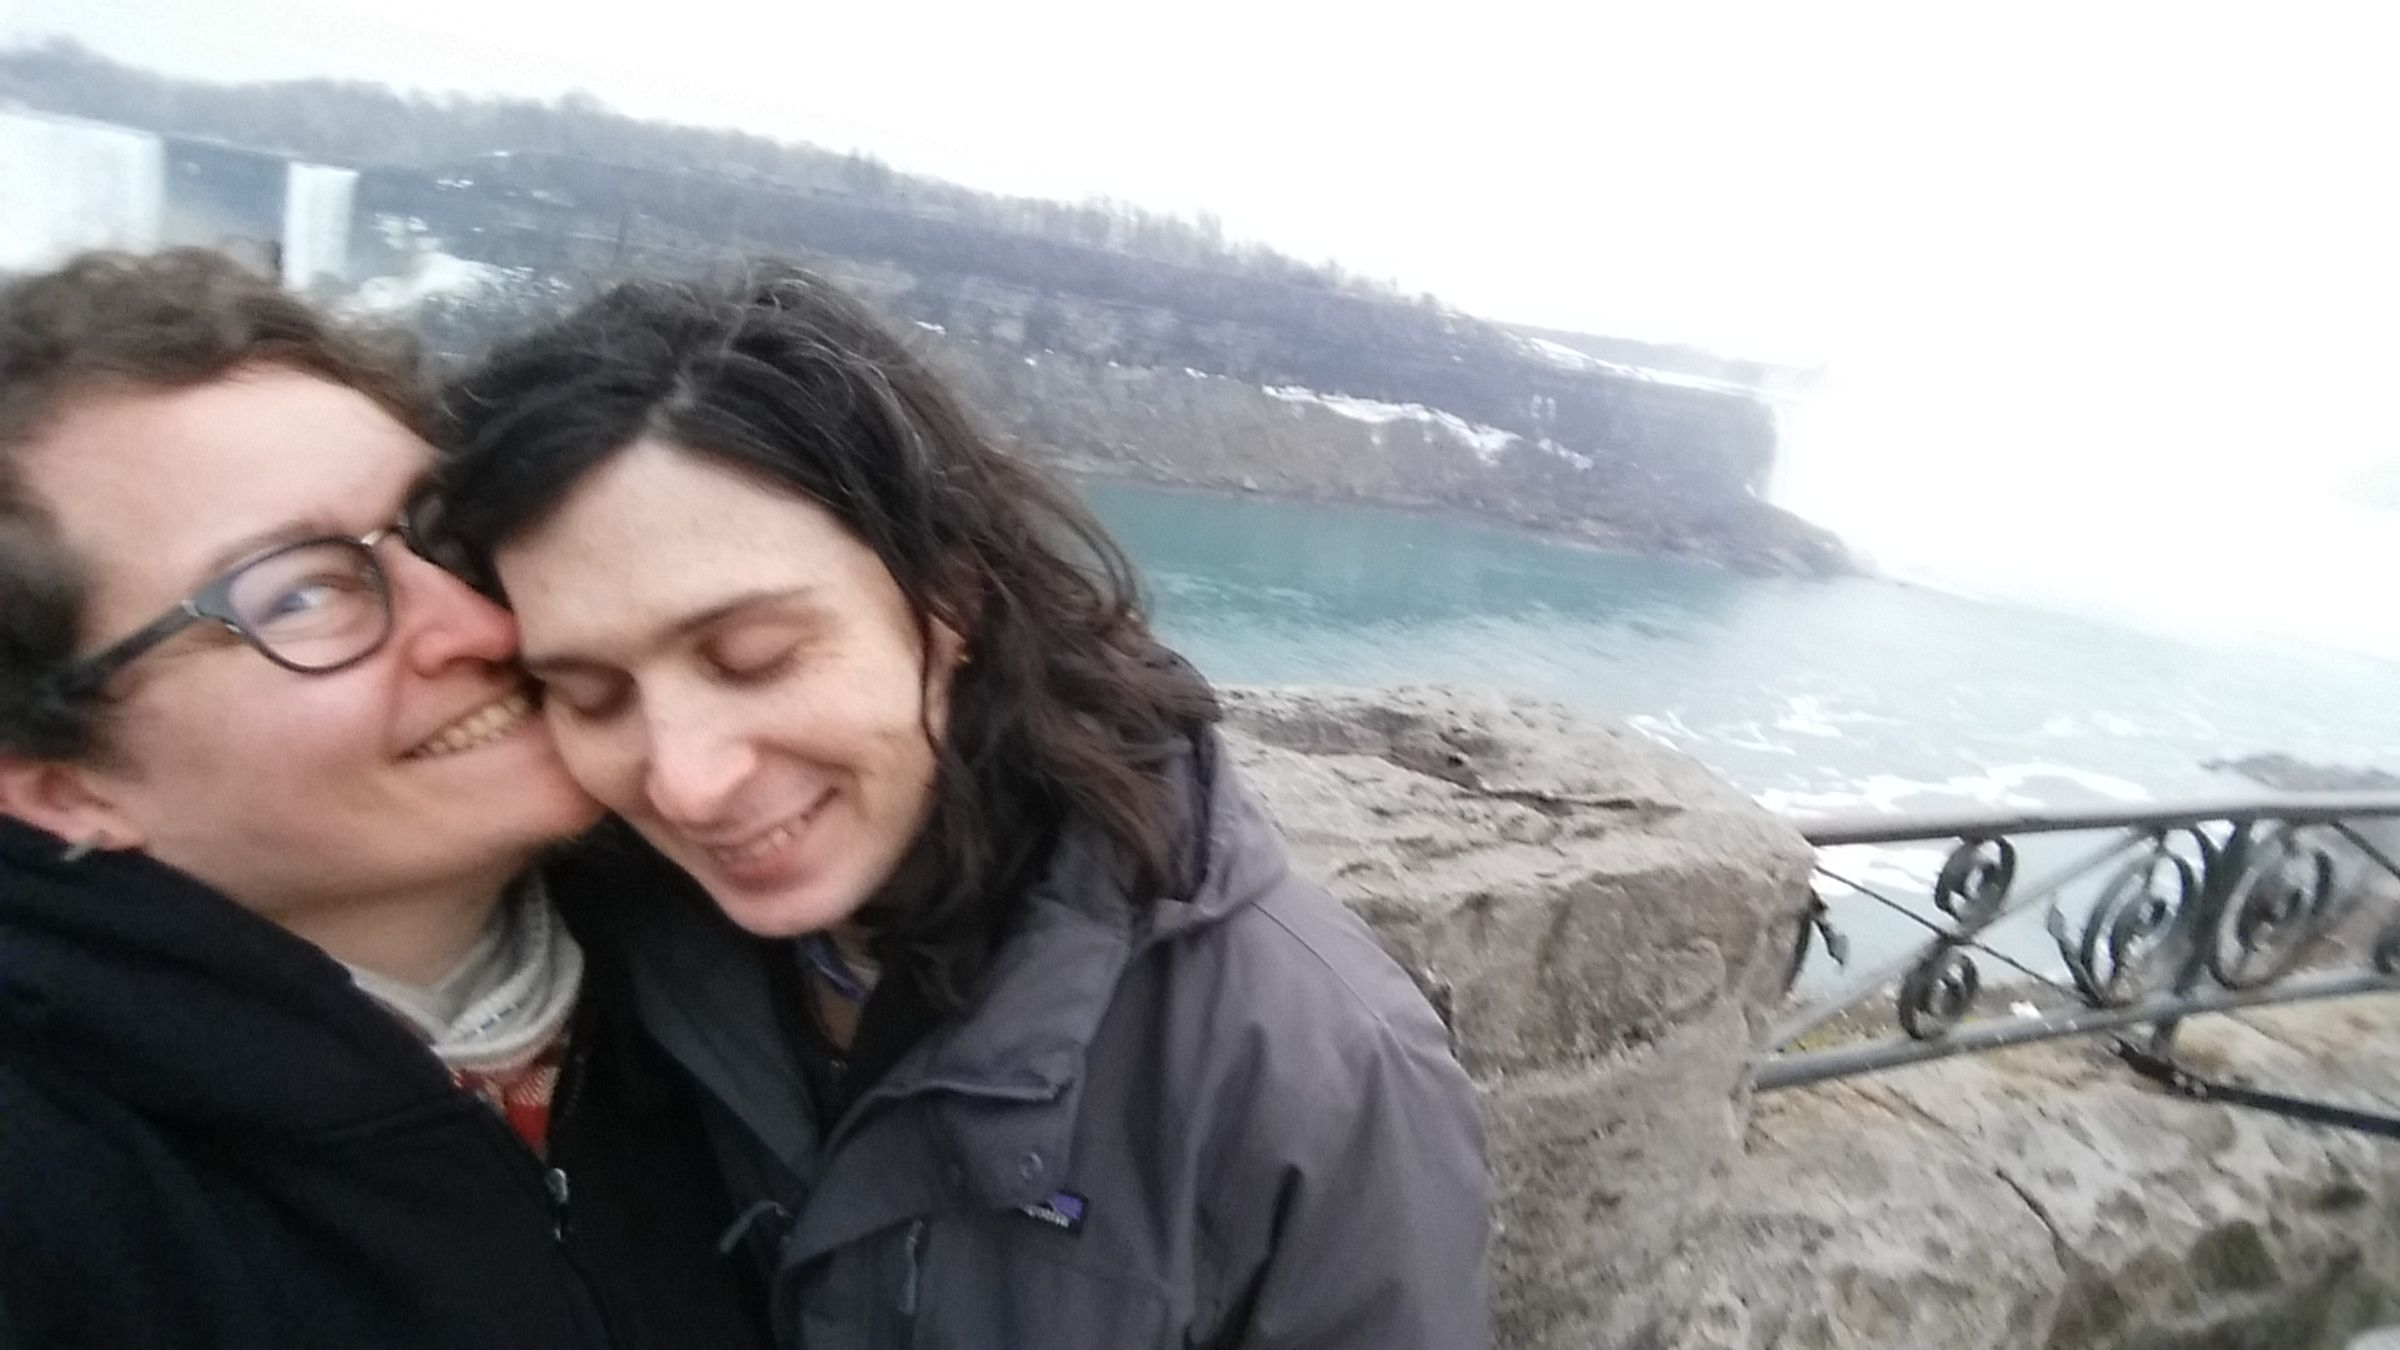 A selfie of two people embracing near the edge of Niagara falls on the Canadian side. One person is smiling into the camera, and the other person is smiling with their face turned down, eyes closed.